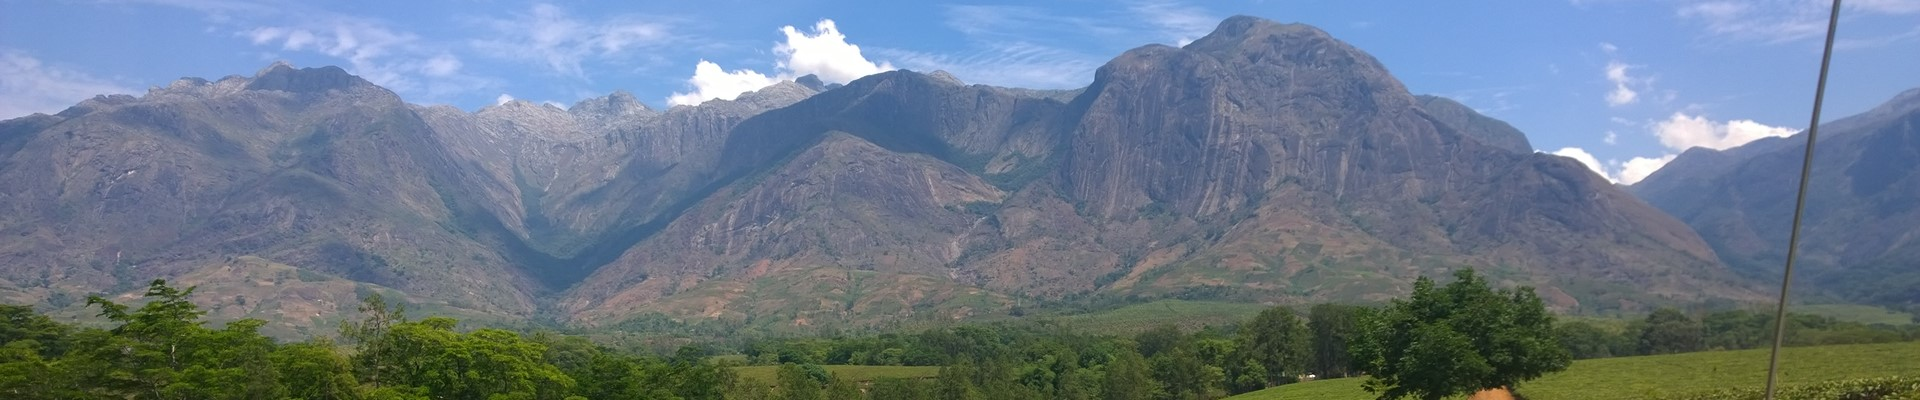 Sayama view to Mt Mulanje